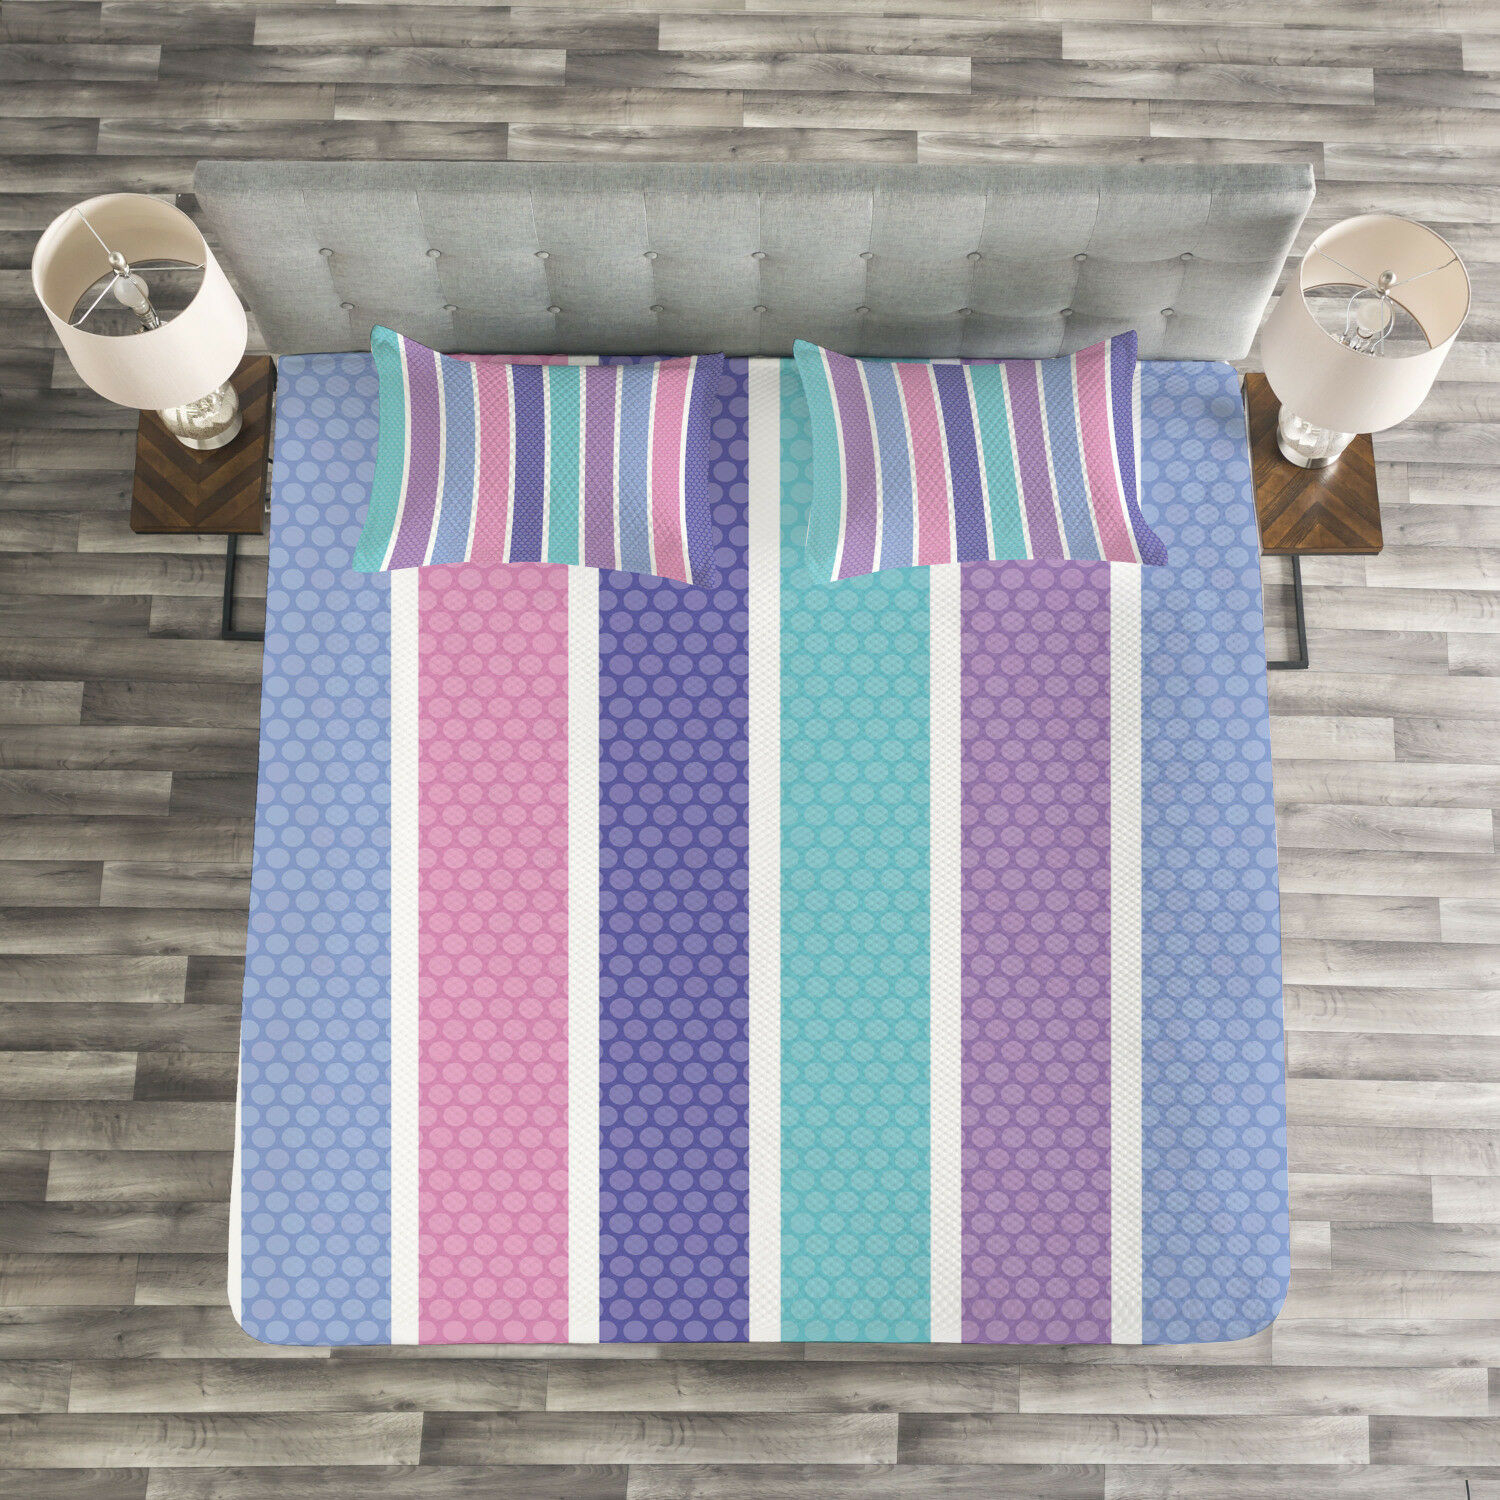 Abstract Quilted Bedspread & Pillow Shams Set, Polka Dot with Stripes Print